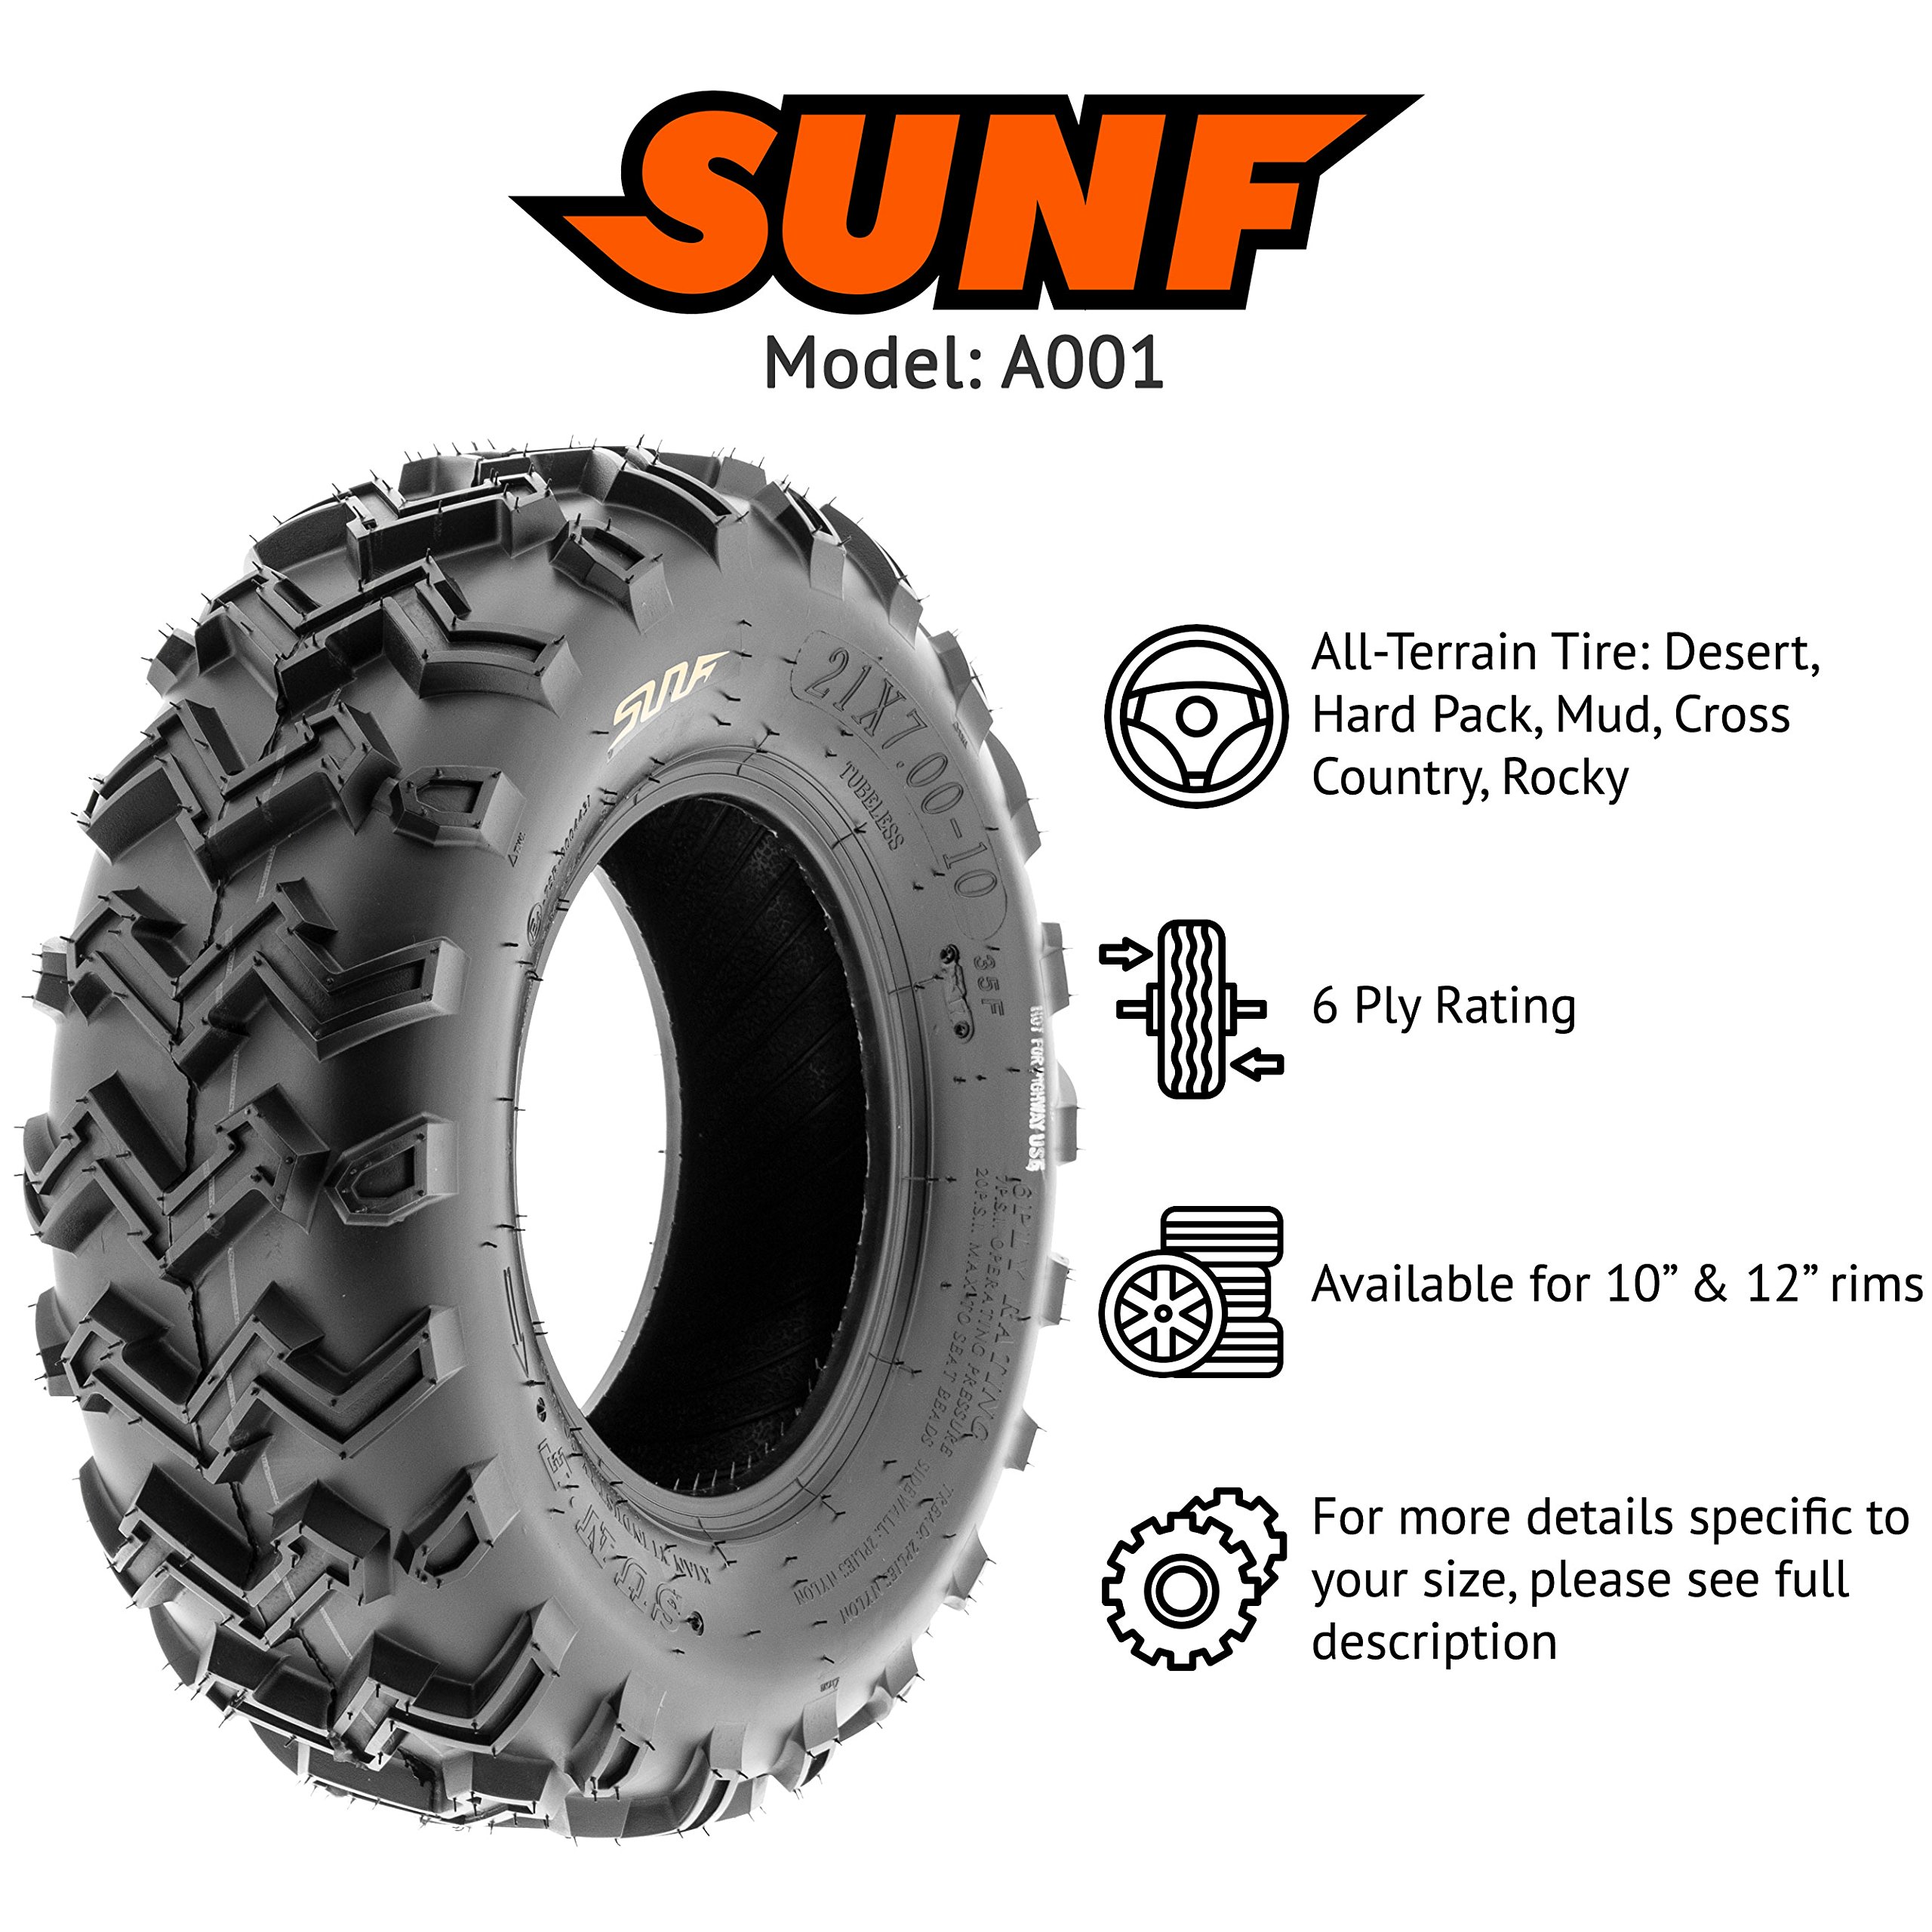 SunF 21x7-10 21x7x10 ATV UTV All Terrain Race Replacement 6 PR Tubeless Tires A001, [Set of 2] by SunF (Image #2)